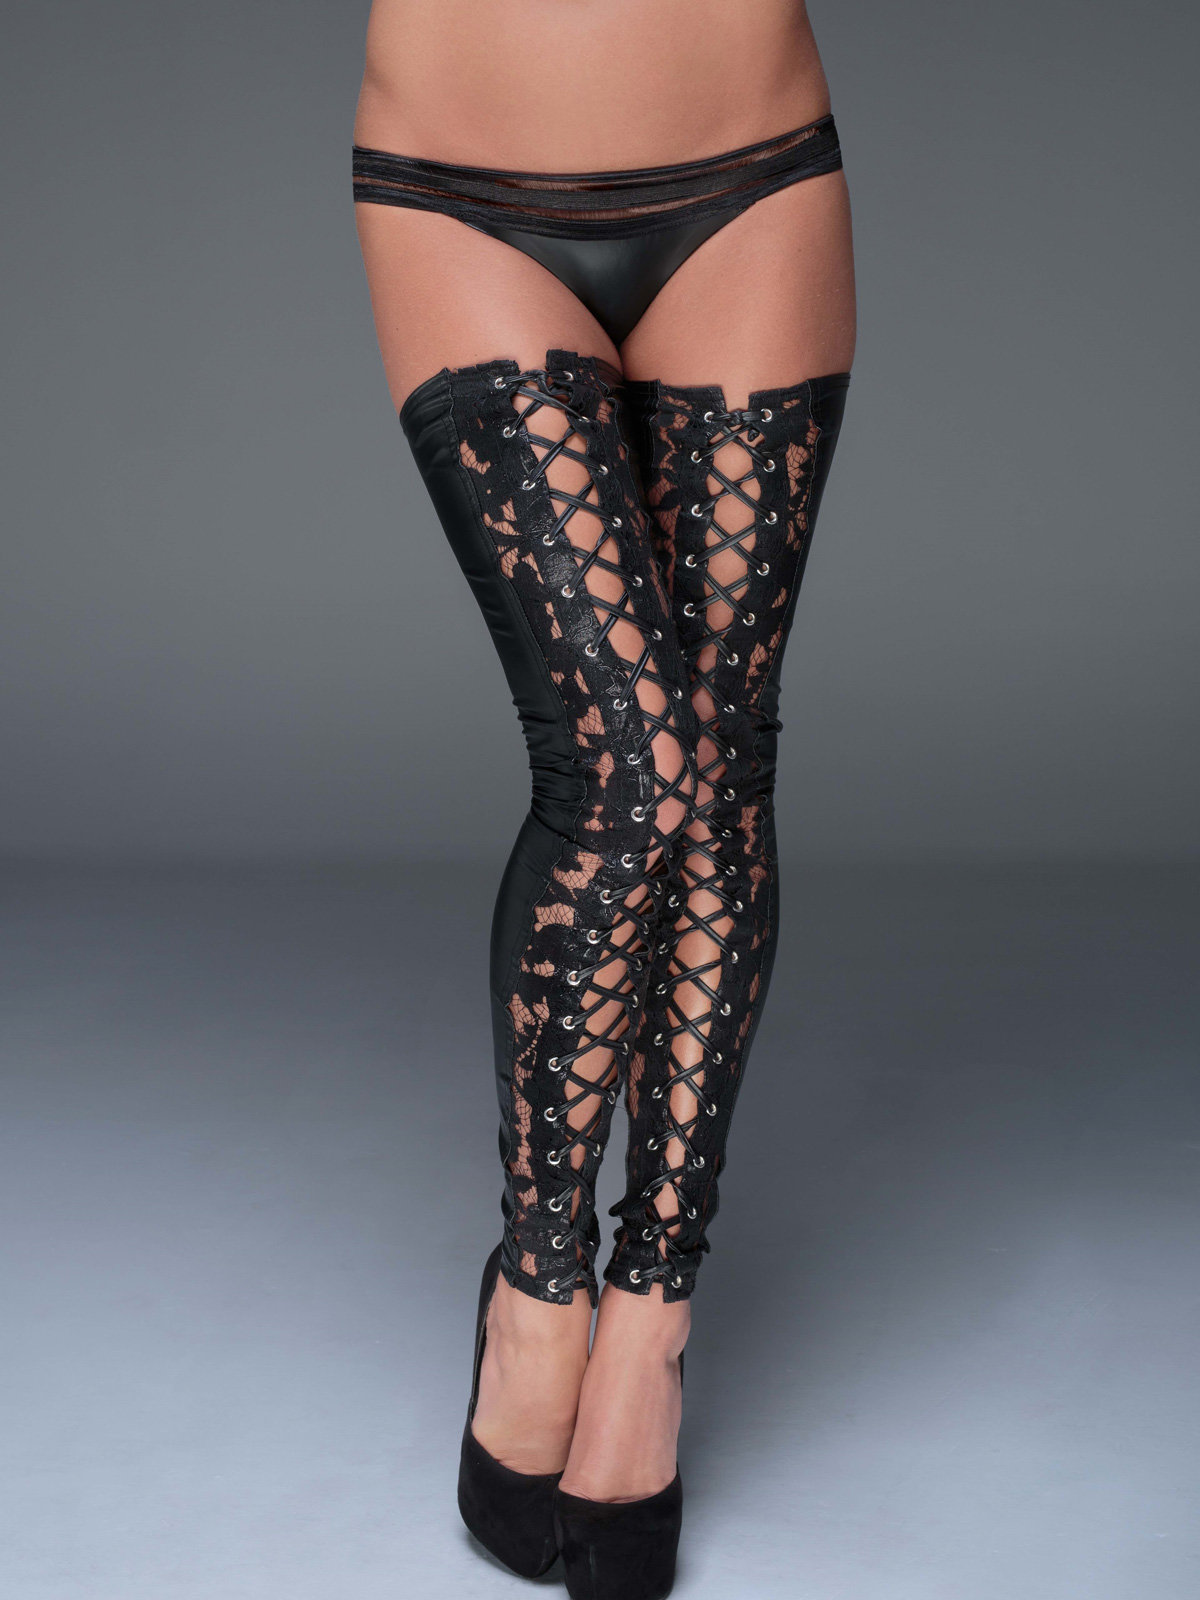 Noir Handmade Dresuri Lace and powerwetlook Negru